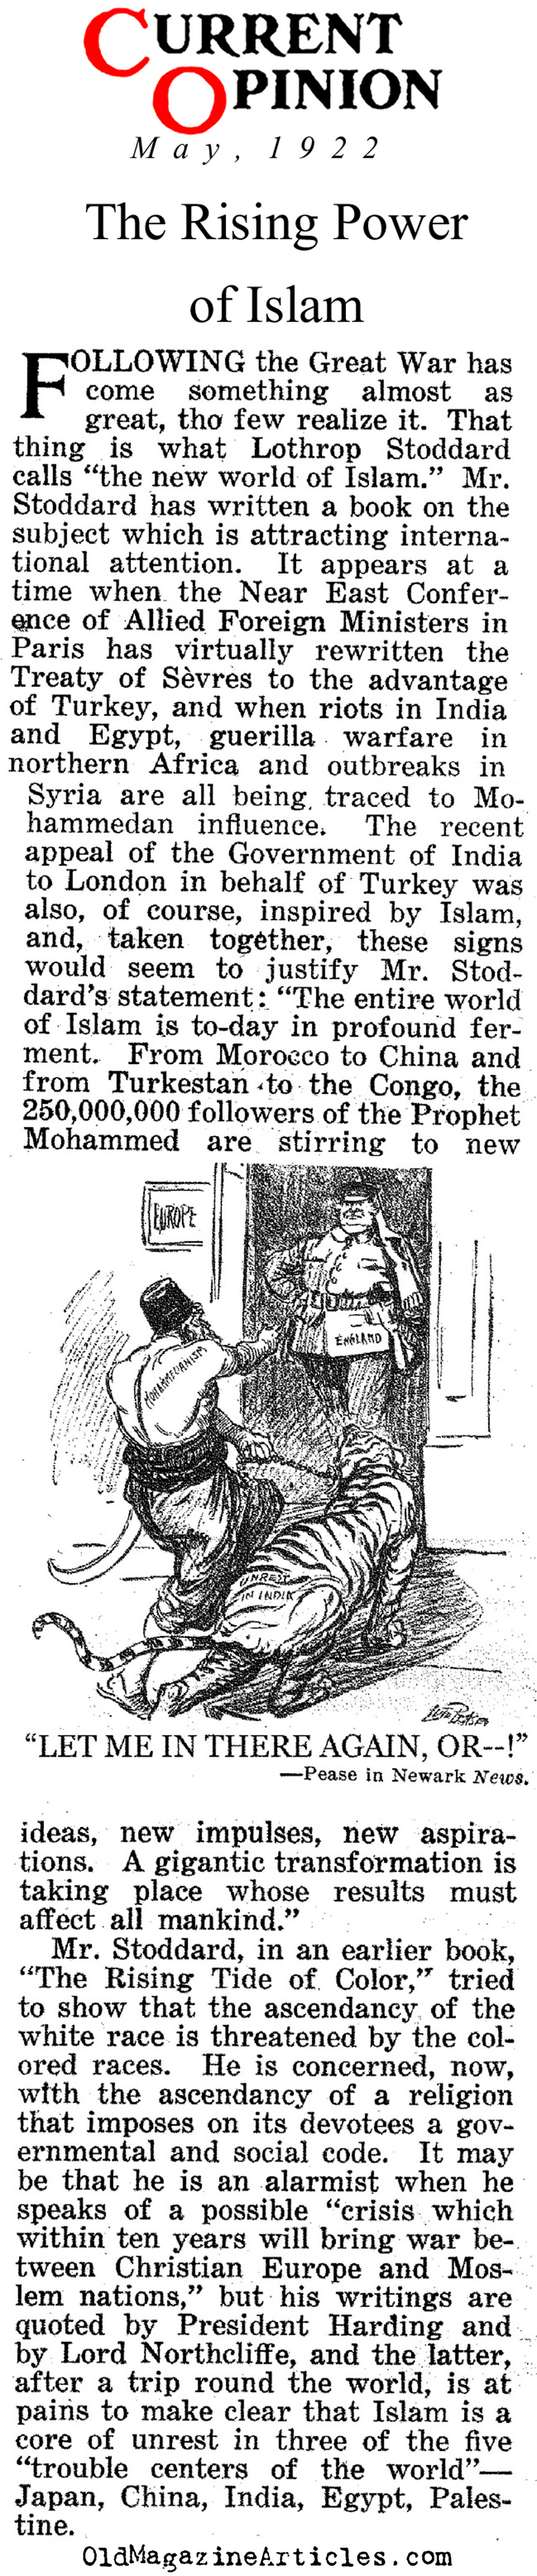 The Rise of Islamic Outrage    (Current Opinion, 1922)